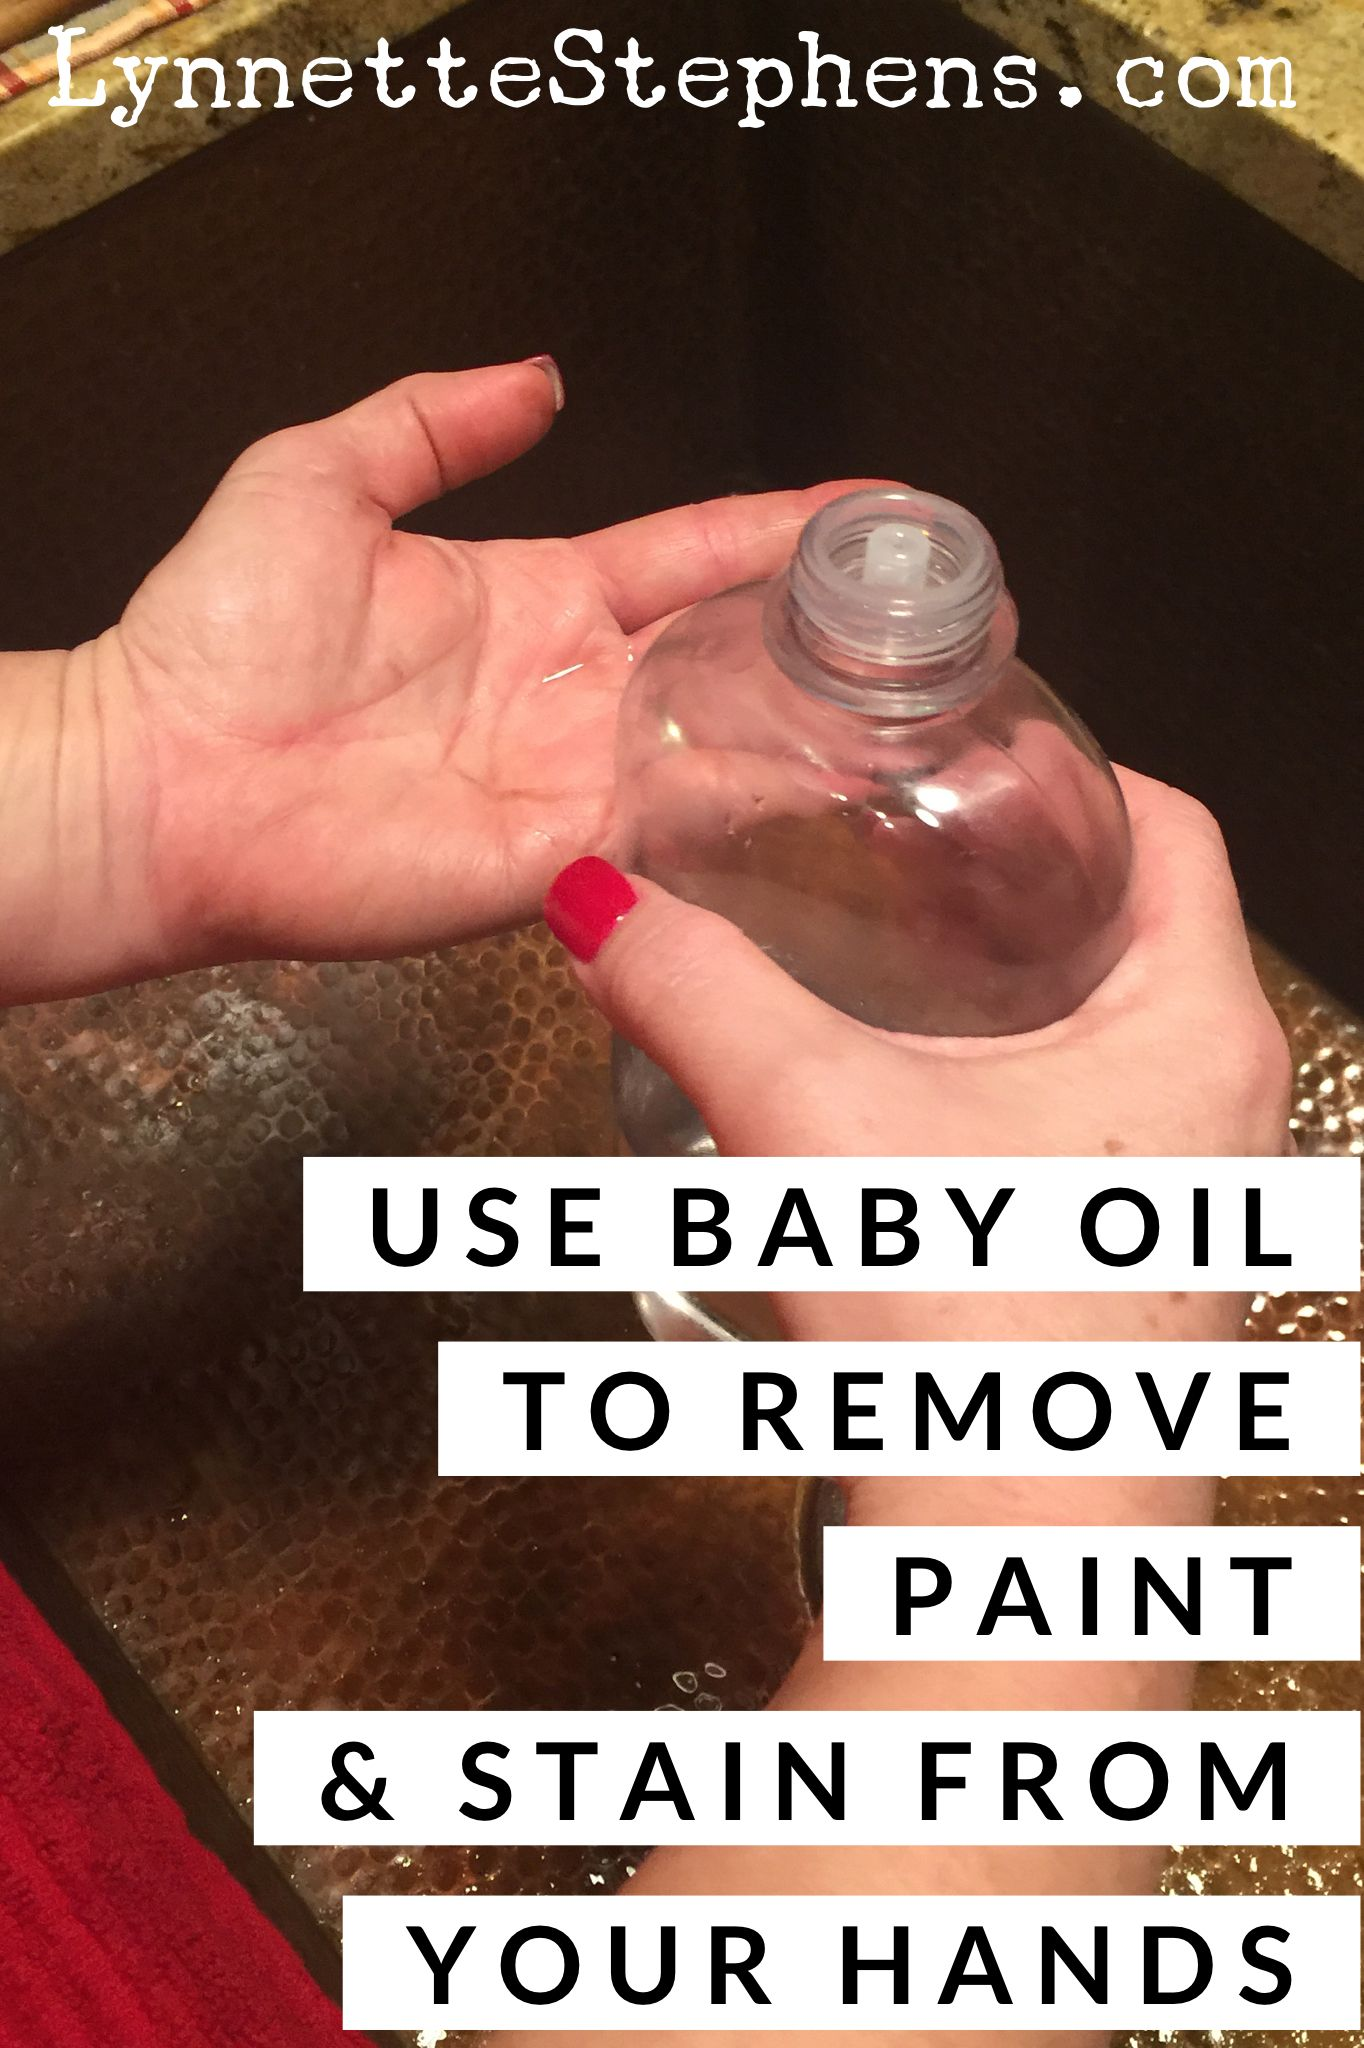 To Remove Things Like Paint And Stain From Your Hands Just Massage